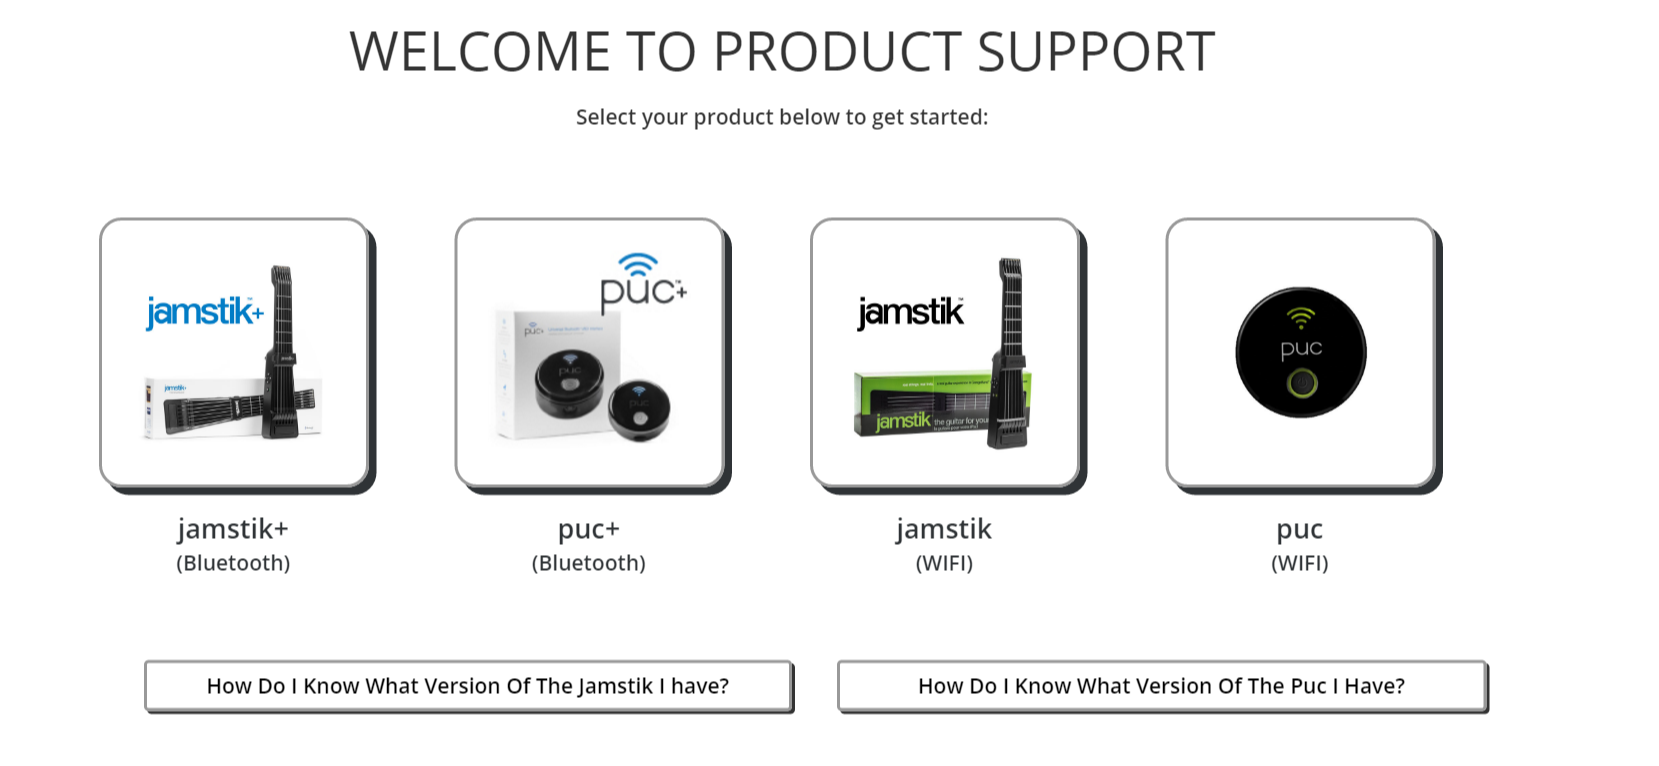 product support for jamstik